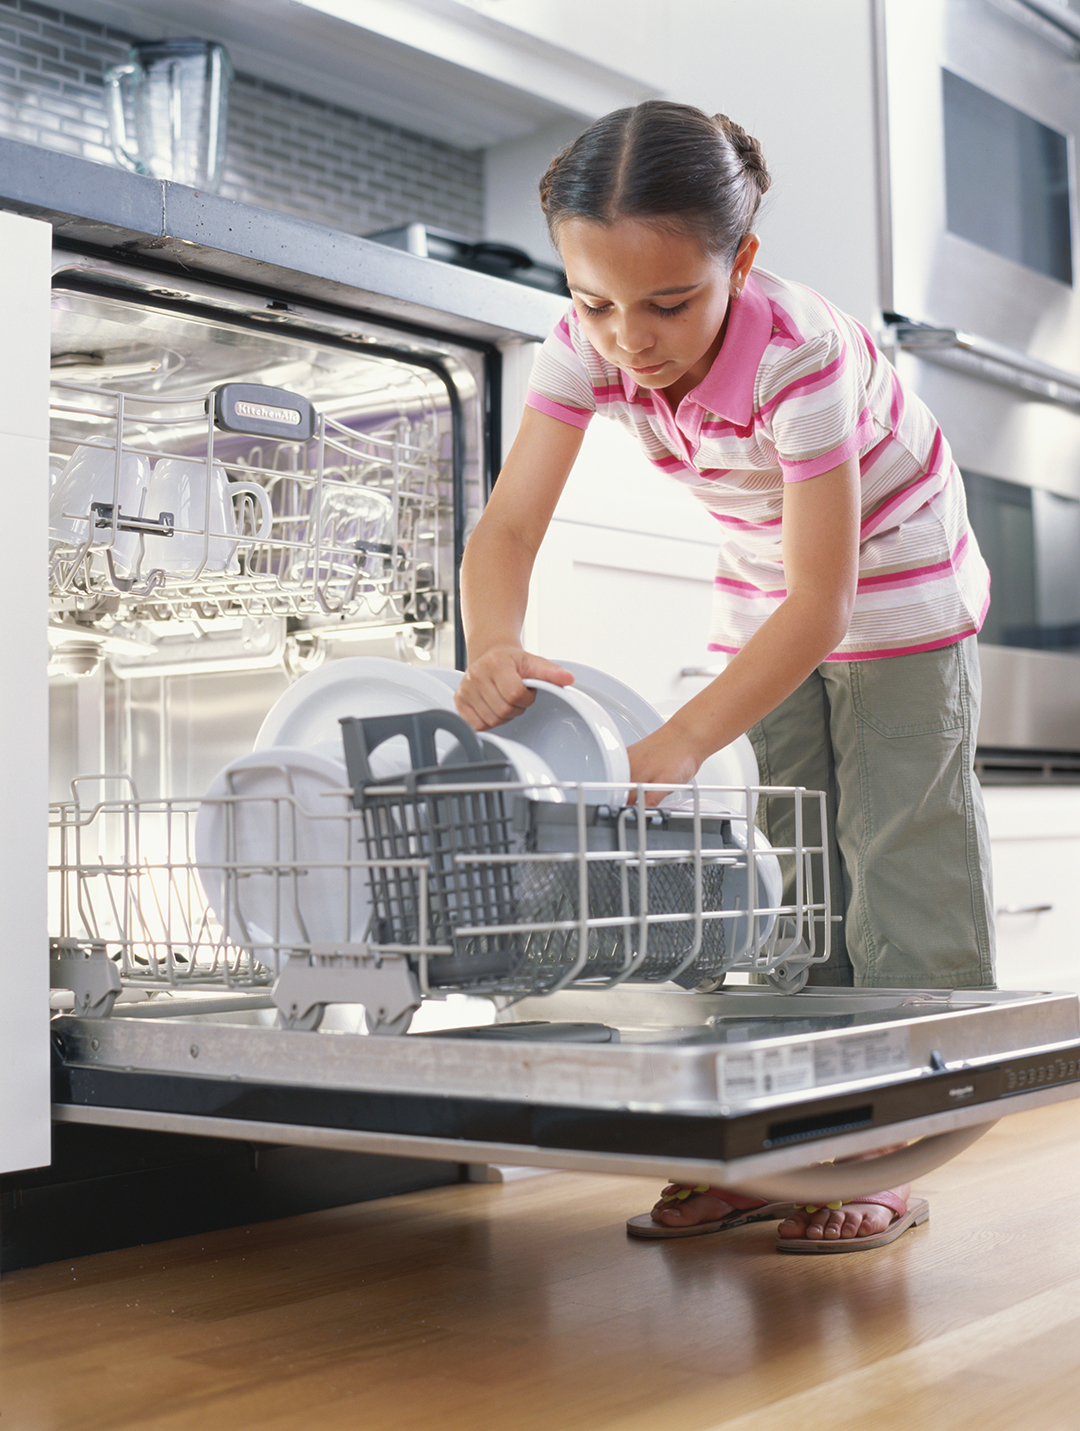 girl loading dishes into dishwasher